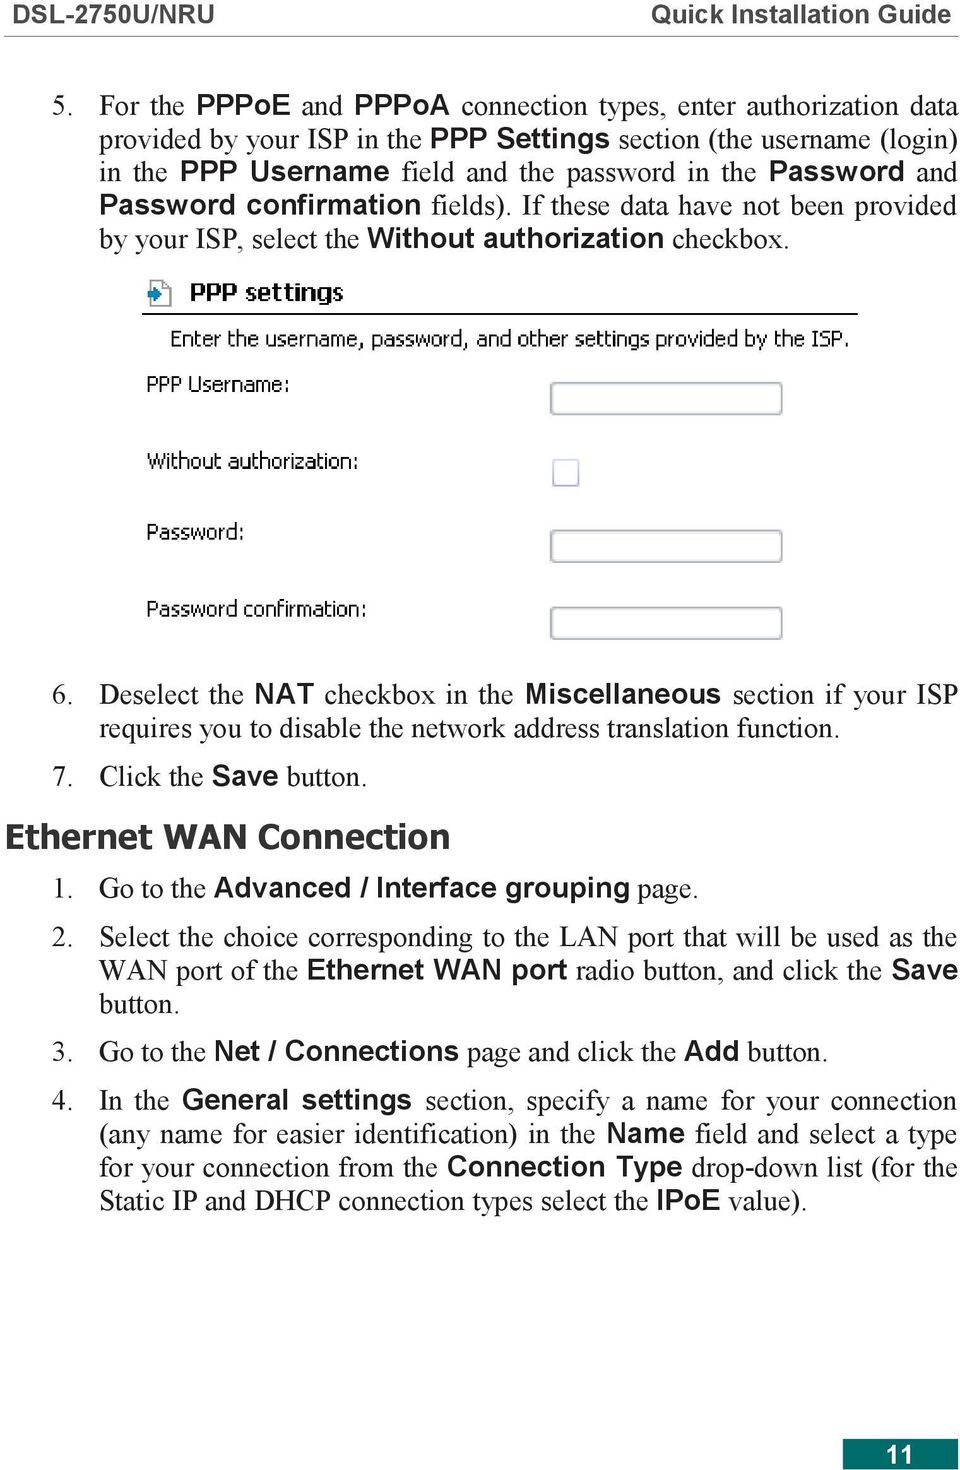 Deselect the NAT checkbox in the Miscellaneous section if your ISP requires you to disable the network address translation function. 7. Click the Save button. Ethernet WAN Connection 1.